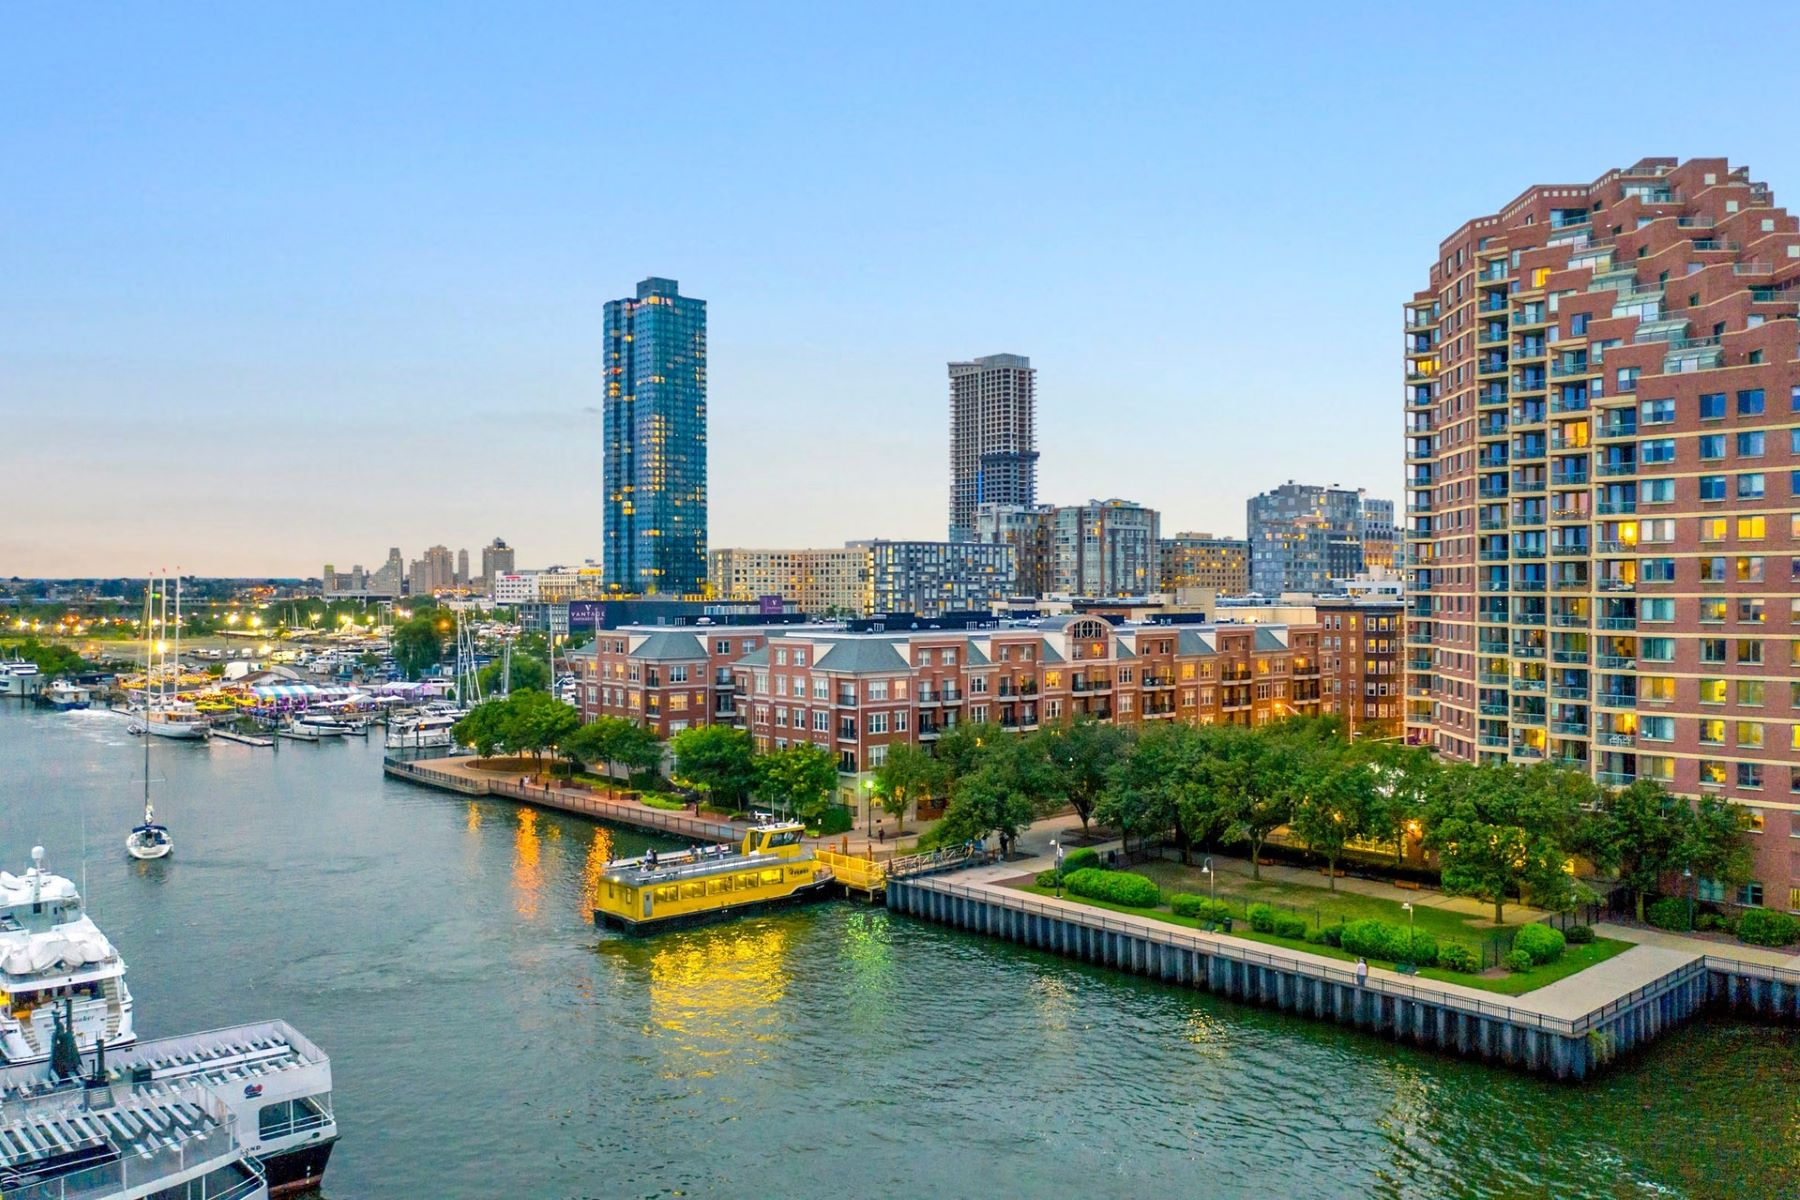 Condominium for Sale at The Pier House Condos 15 Warren St #125 Jersey City, New Jersey 07302 United States